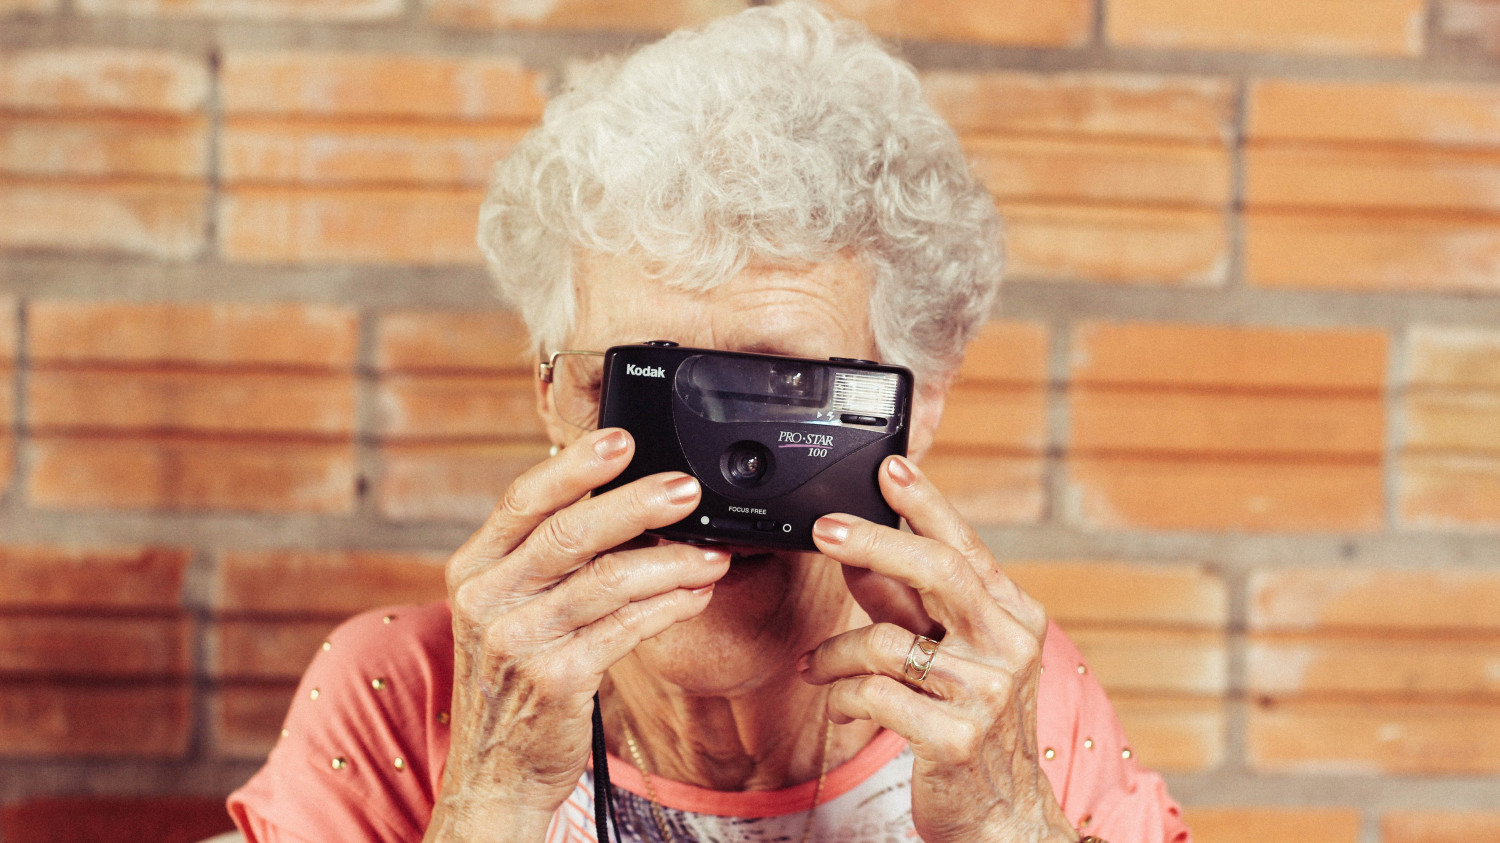 Image of an elderly woman with a camera held up to her face taking a photo